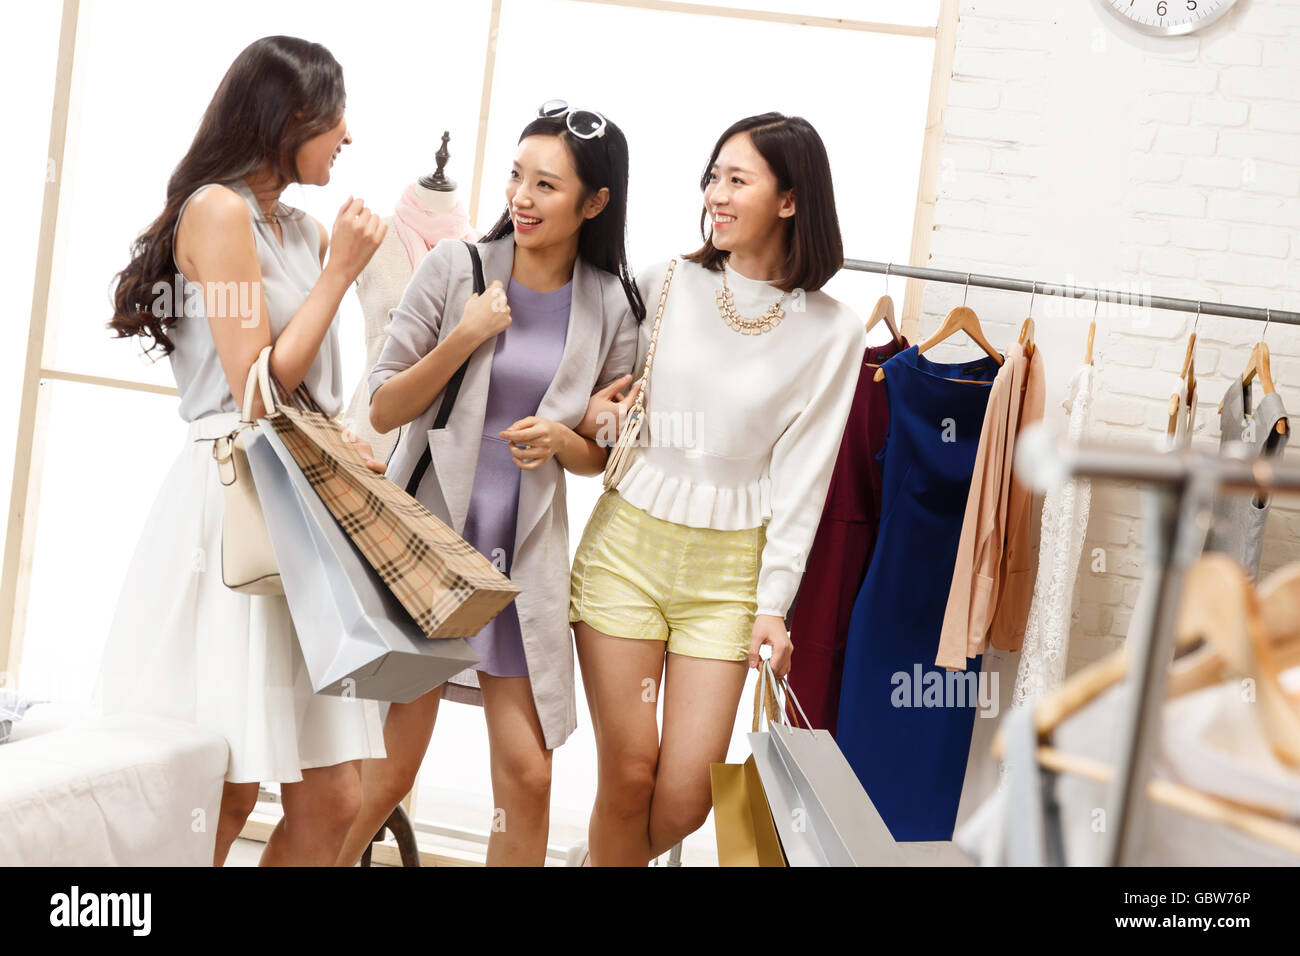 b08dc4f3c7d67 Young women's clothing store shopping in bestie Stock Photo ...